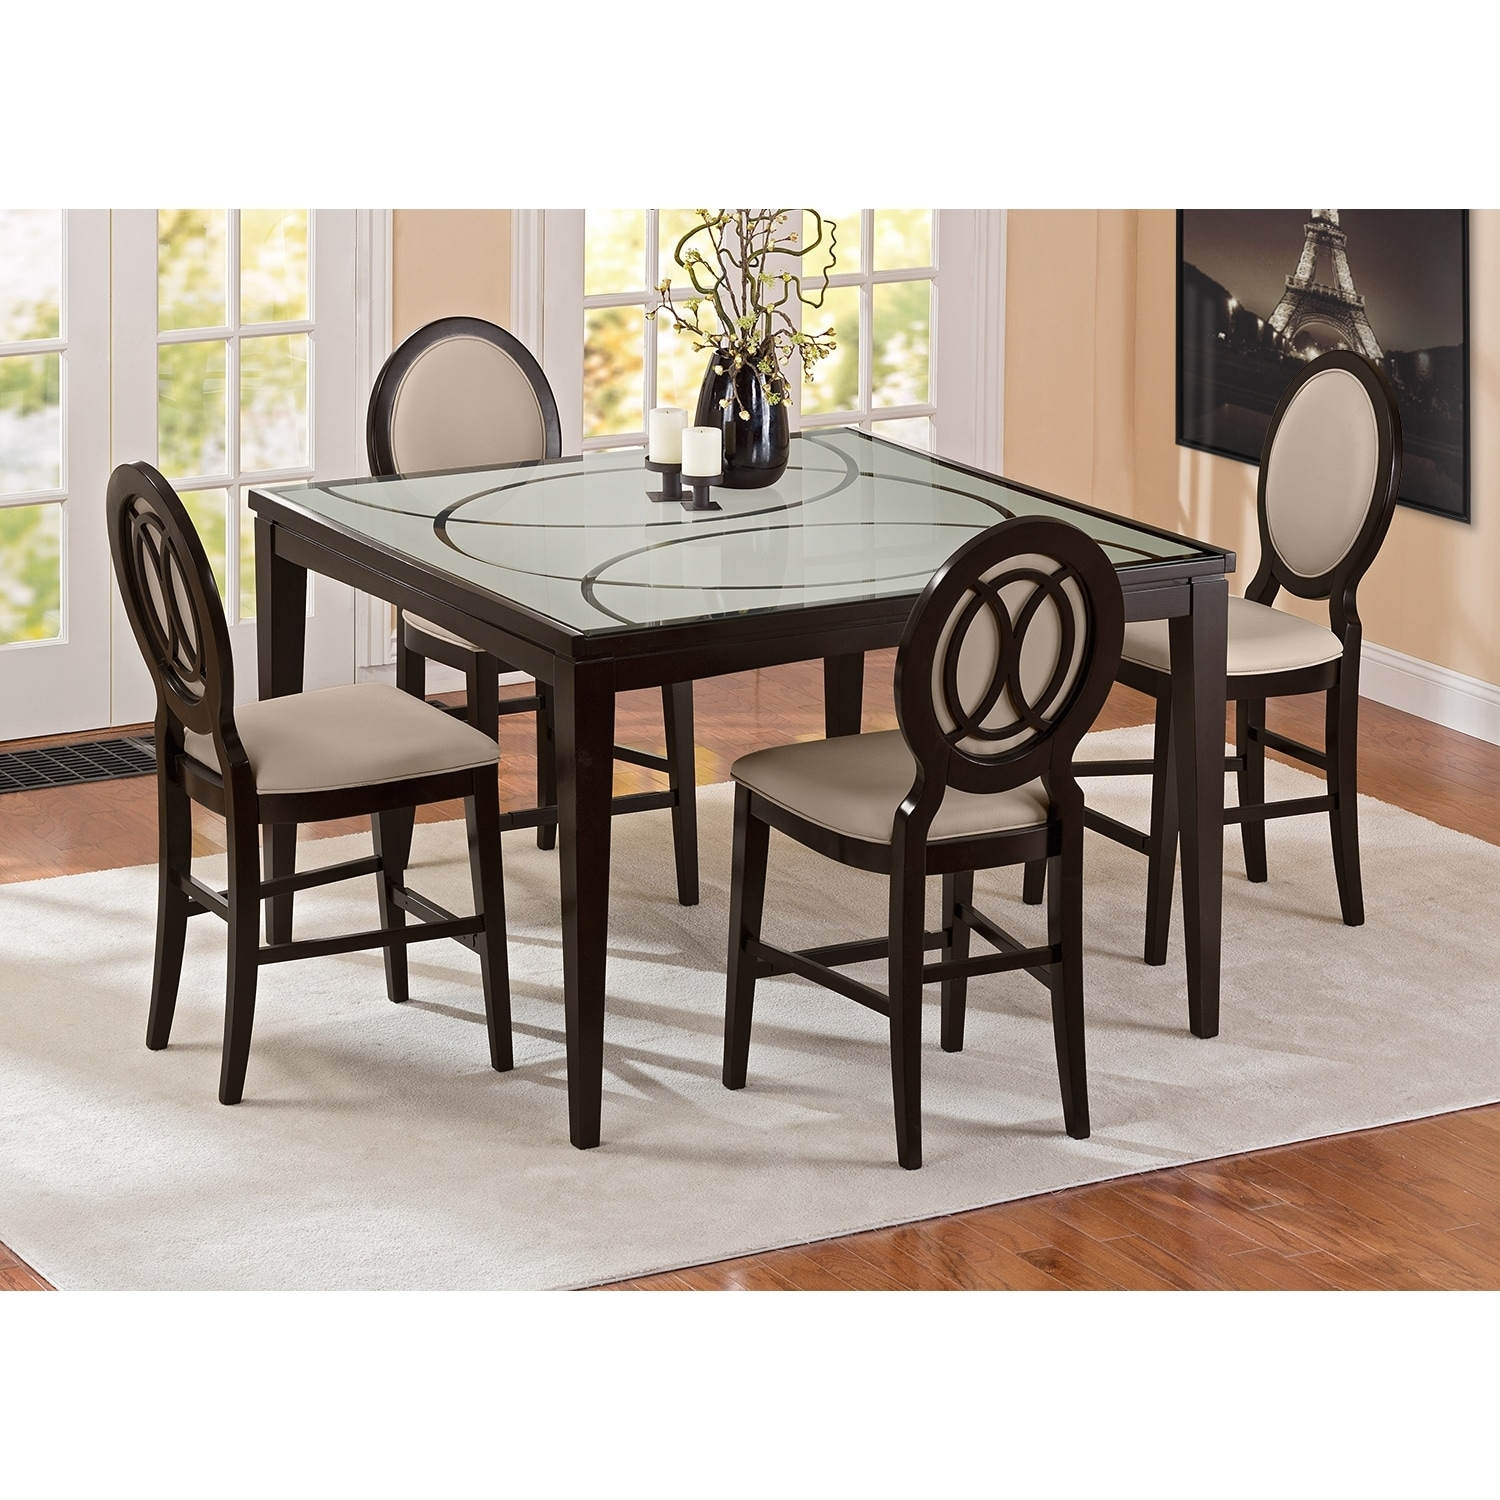 click to change image - Counter Height Chairs